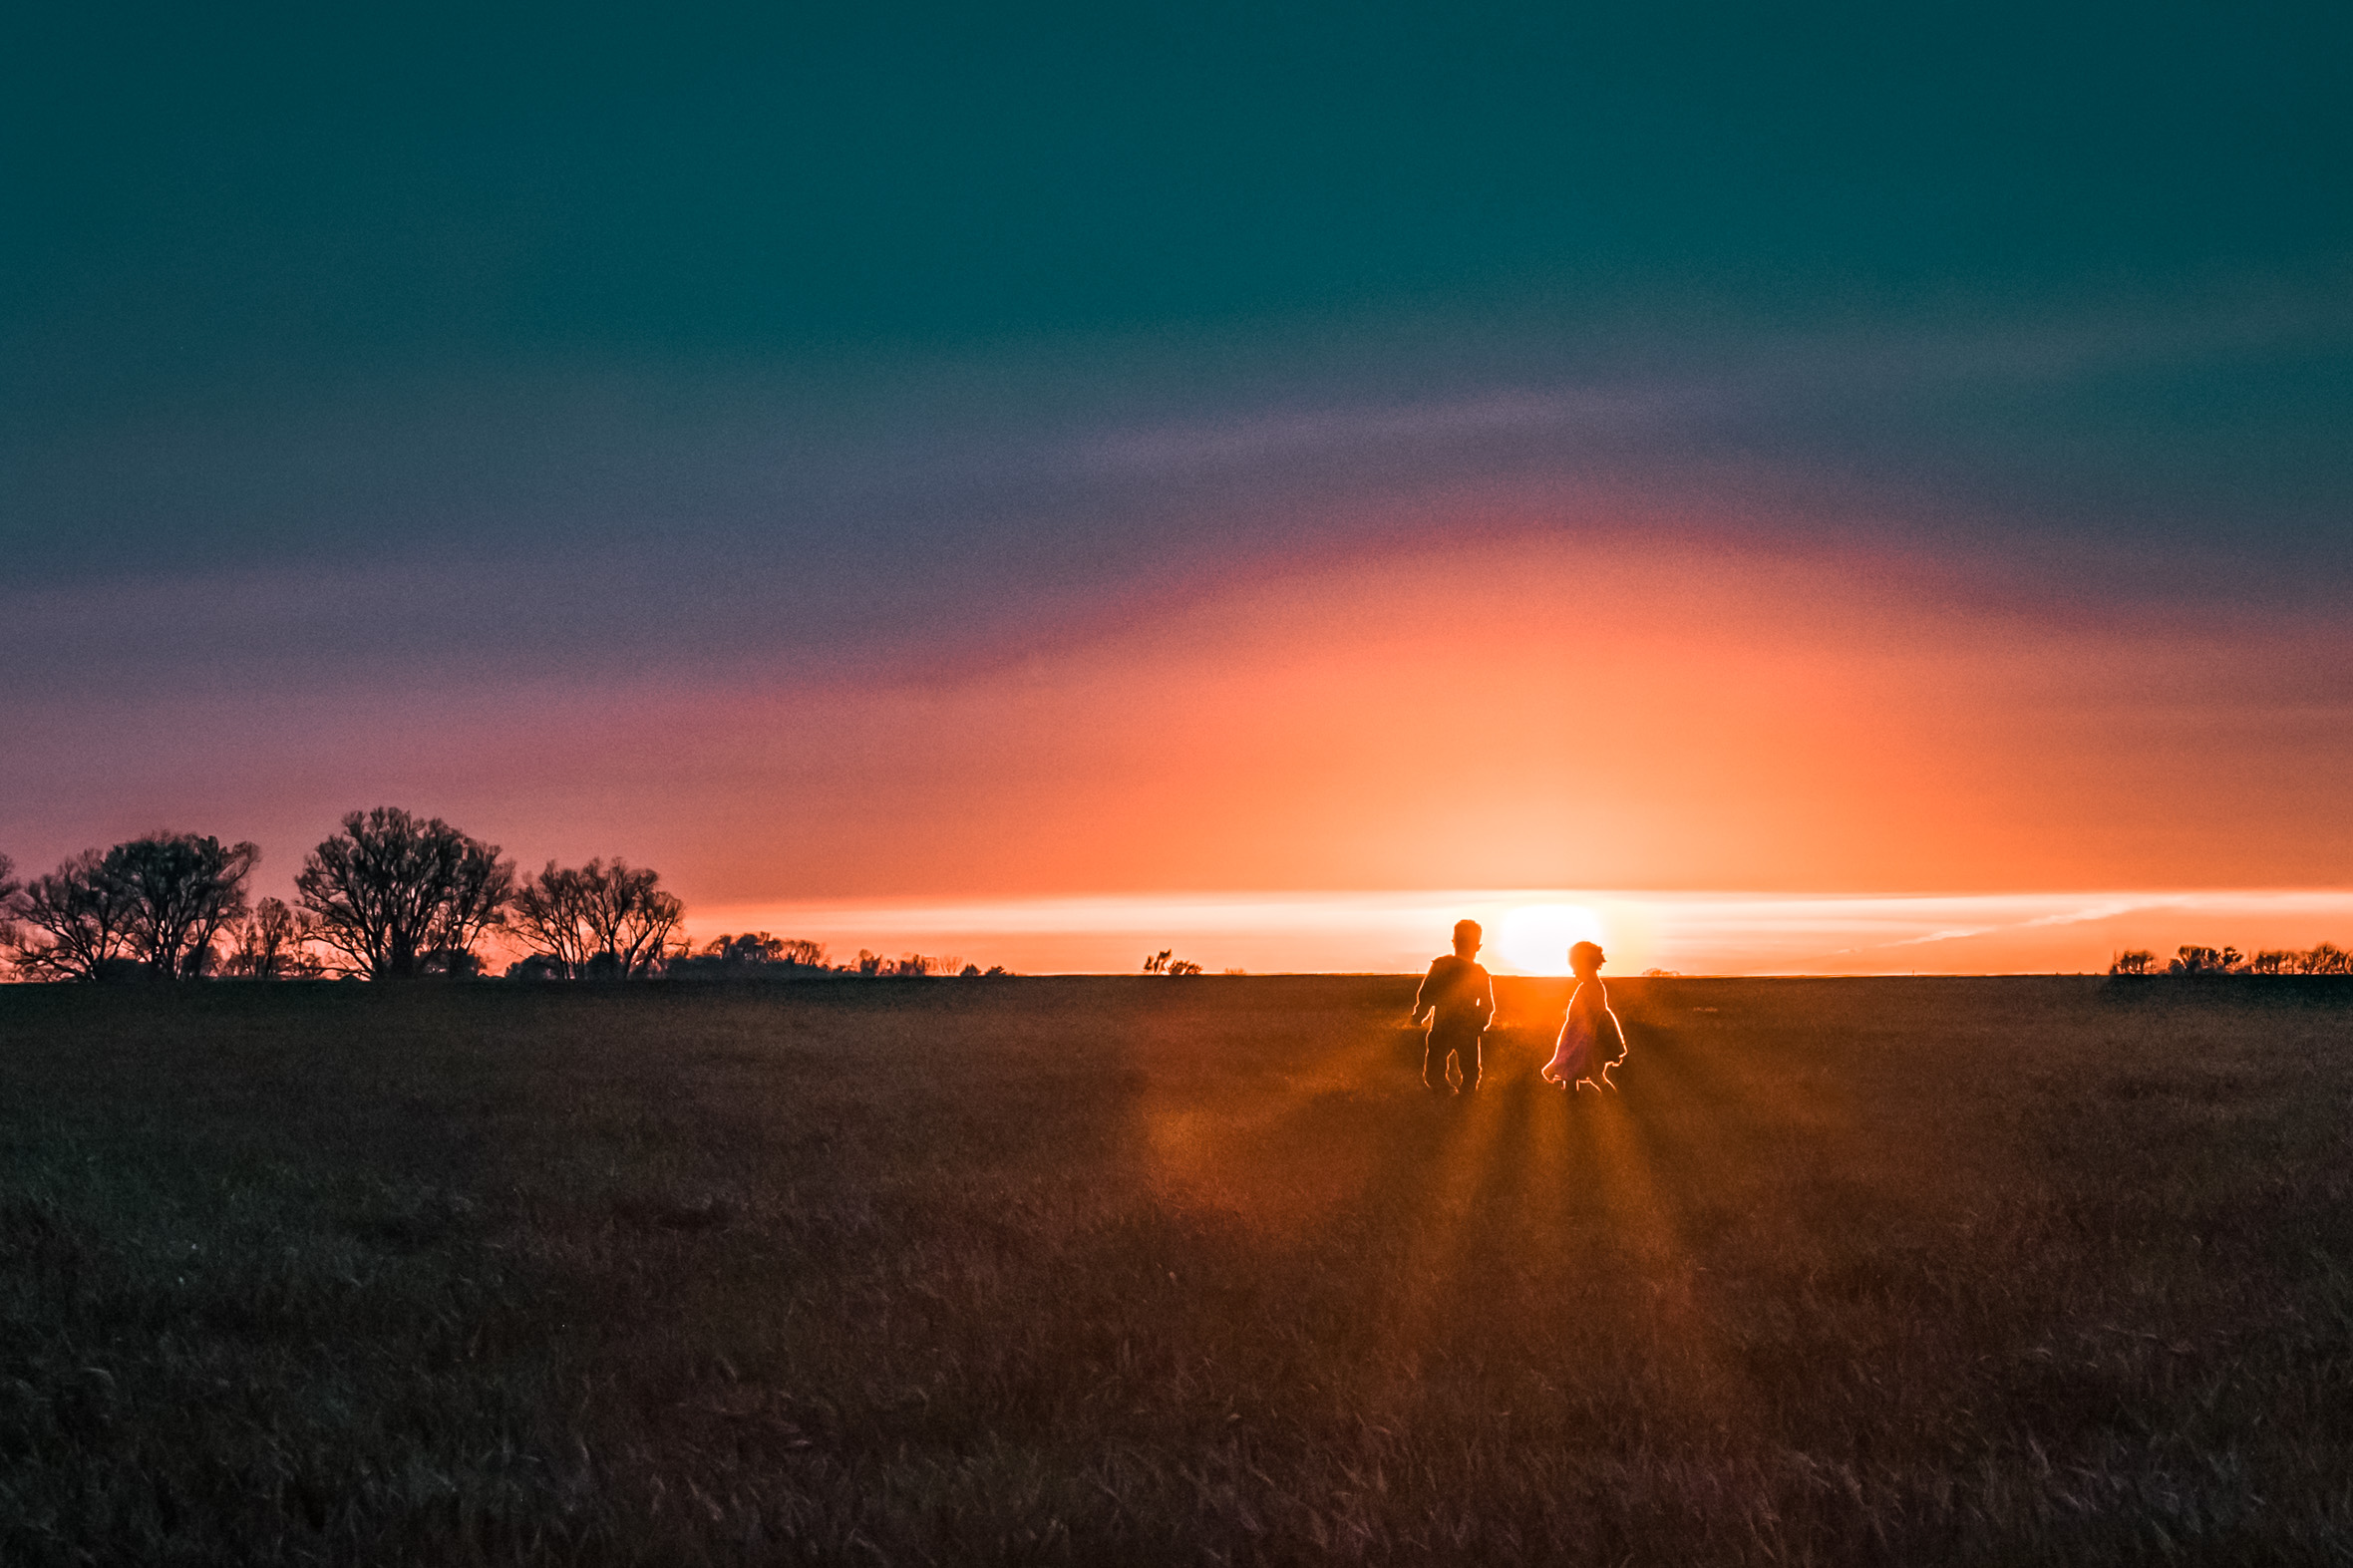 beautifully colored sunset - siblings playing at dusk - country